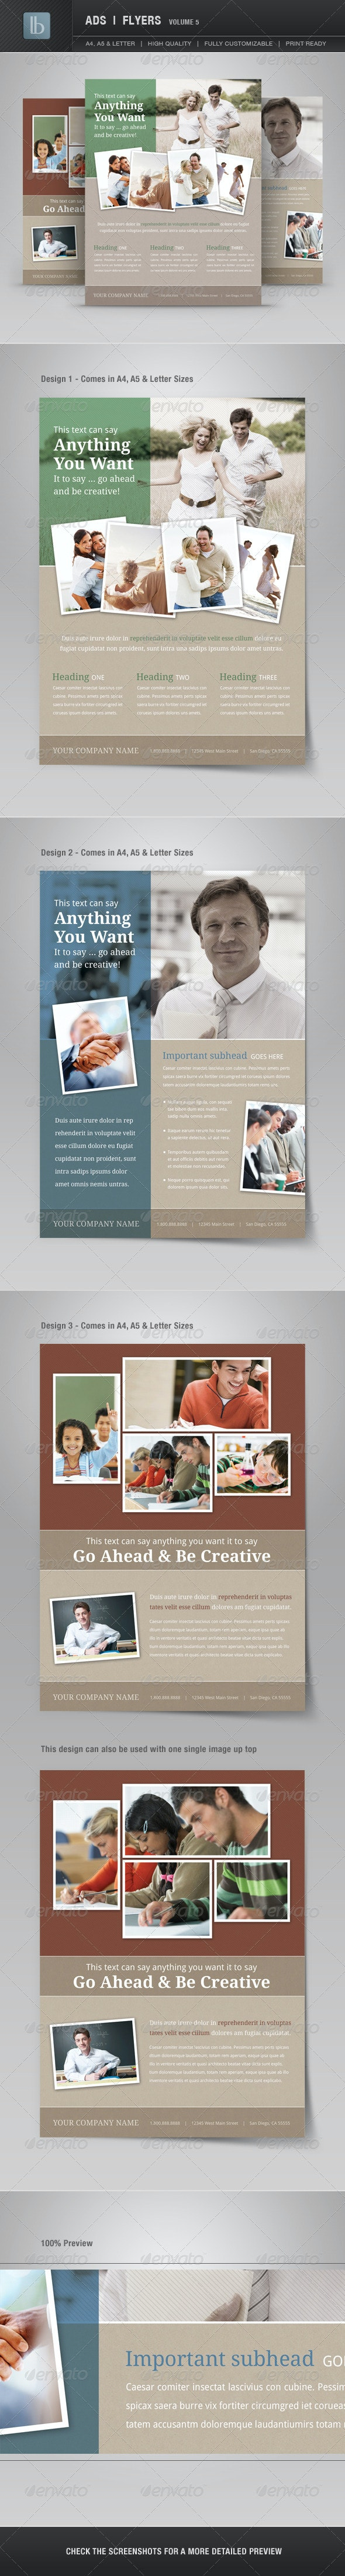 Ads   Business Flyers   Volume 5 - Corporate Flyers